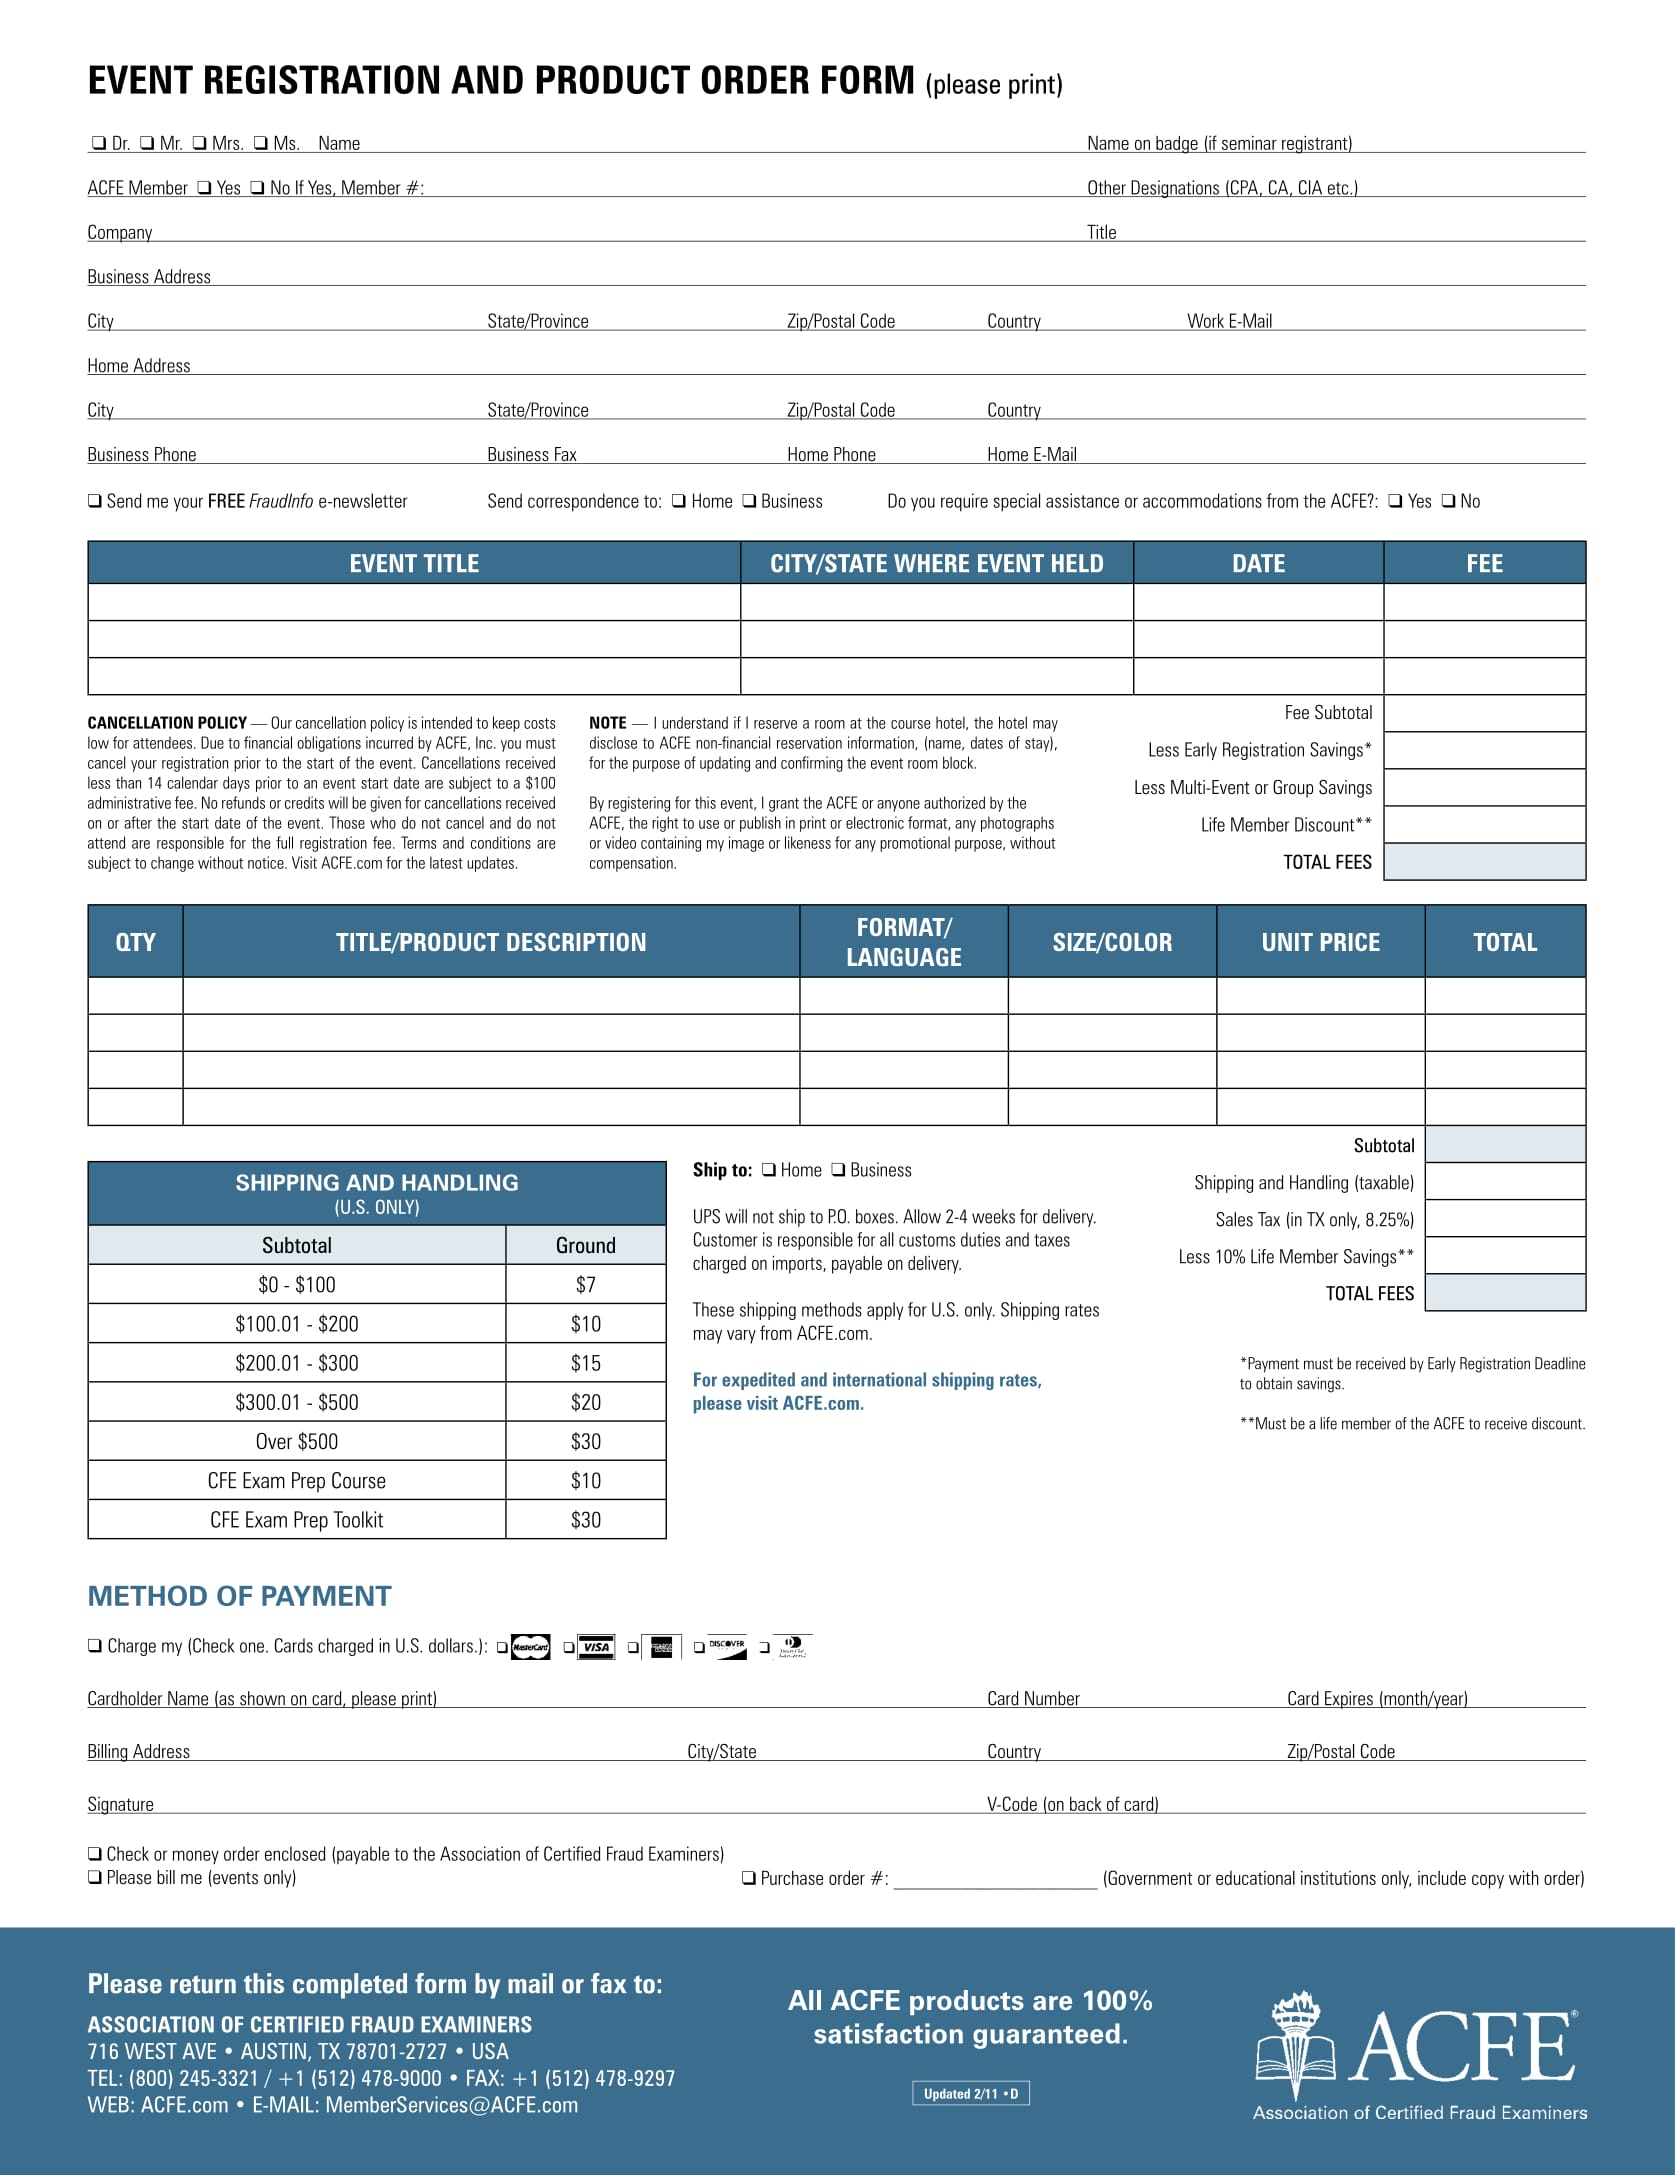 event registration product order form 1